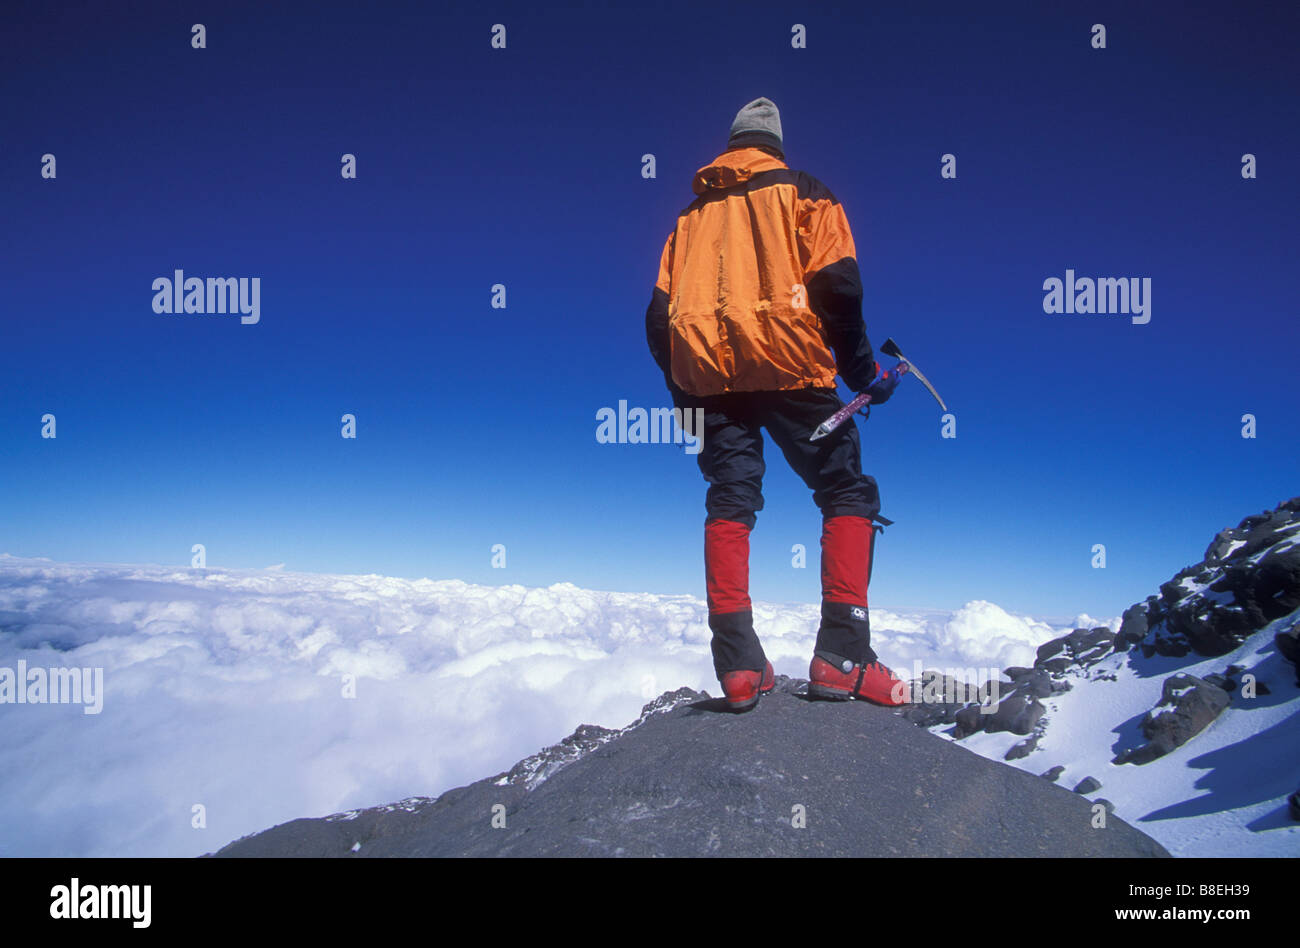 Mountain climber enjoys the view in distance while standing on El Pico de Orizaba in Mexico - Stock Image